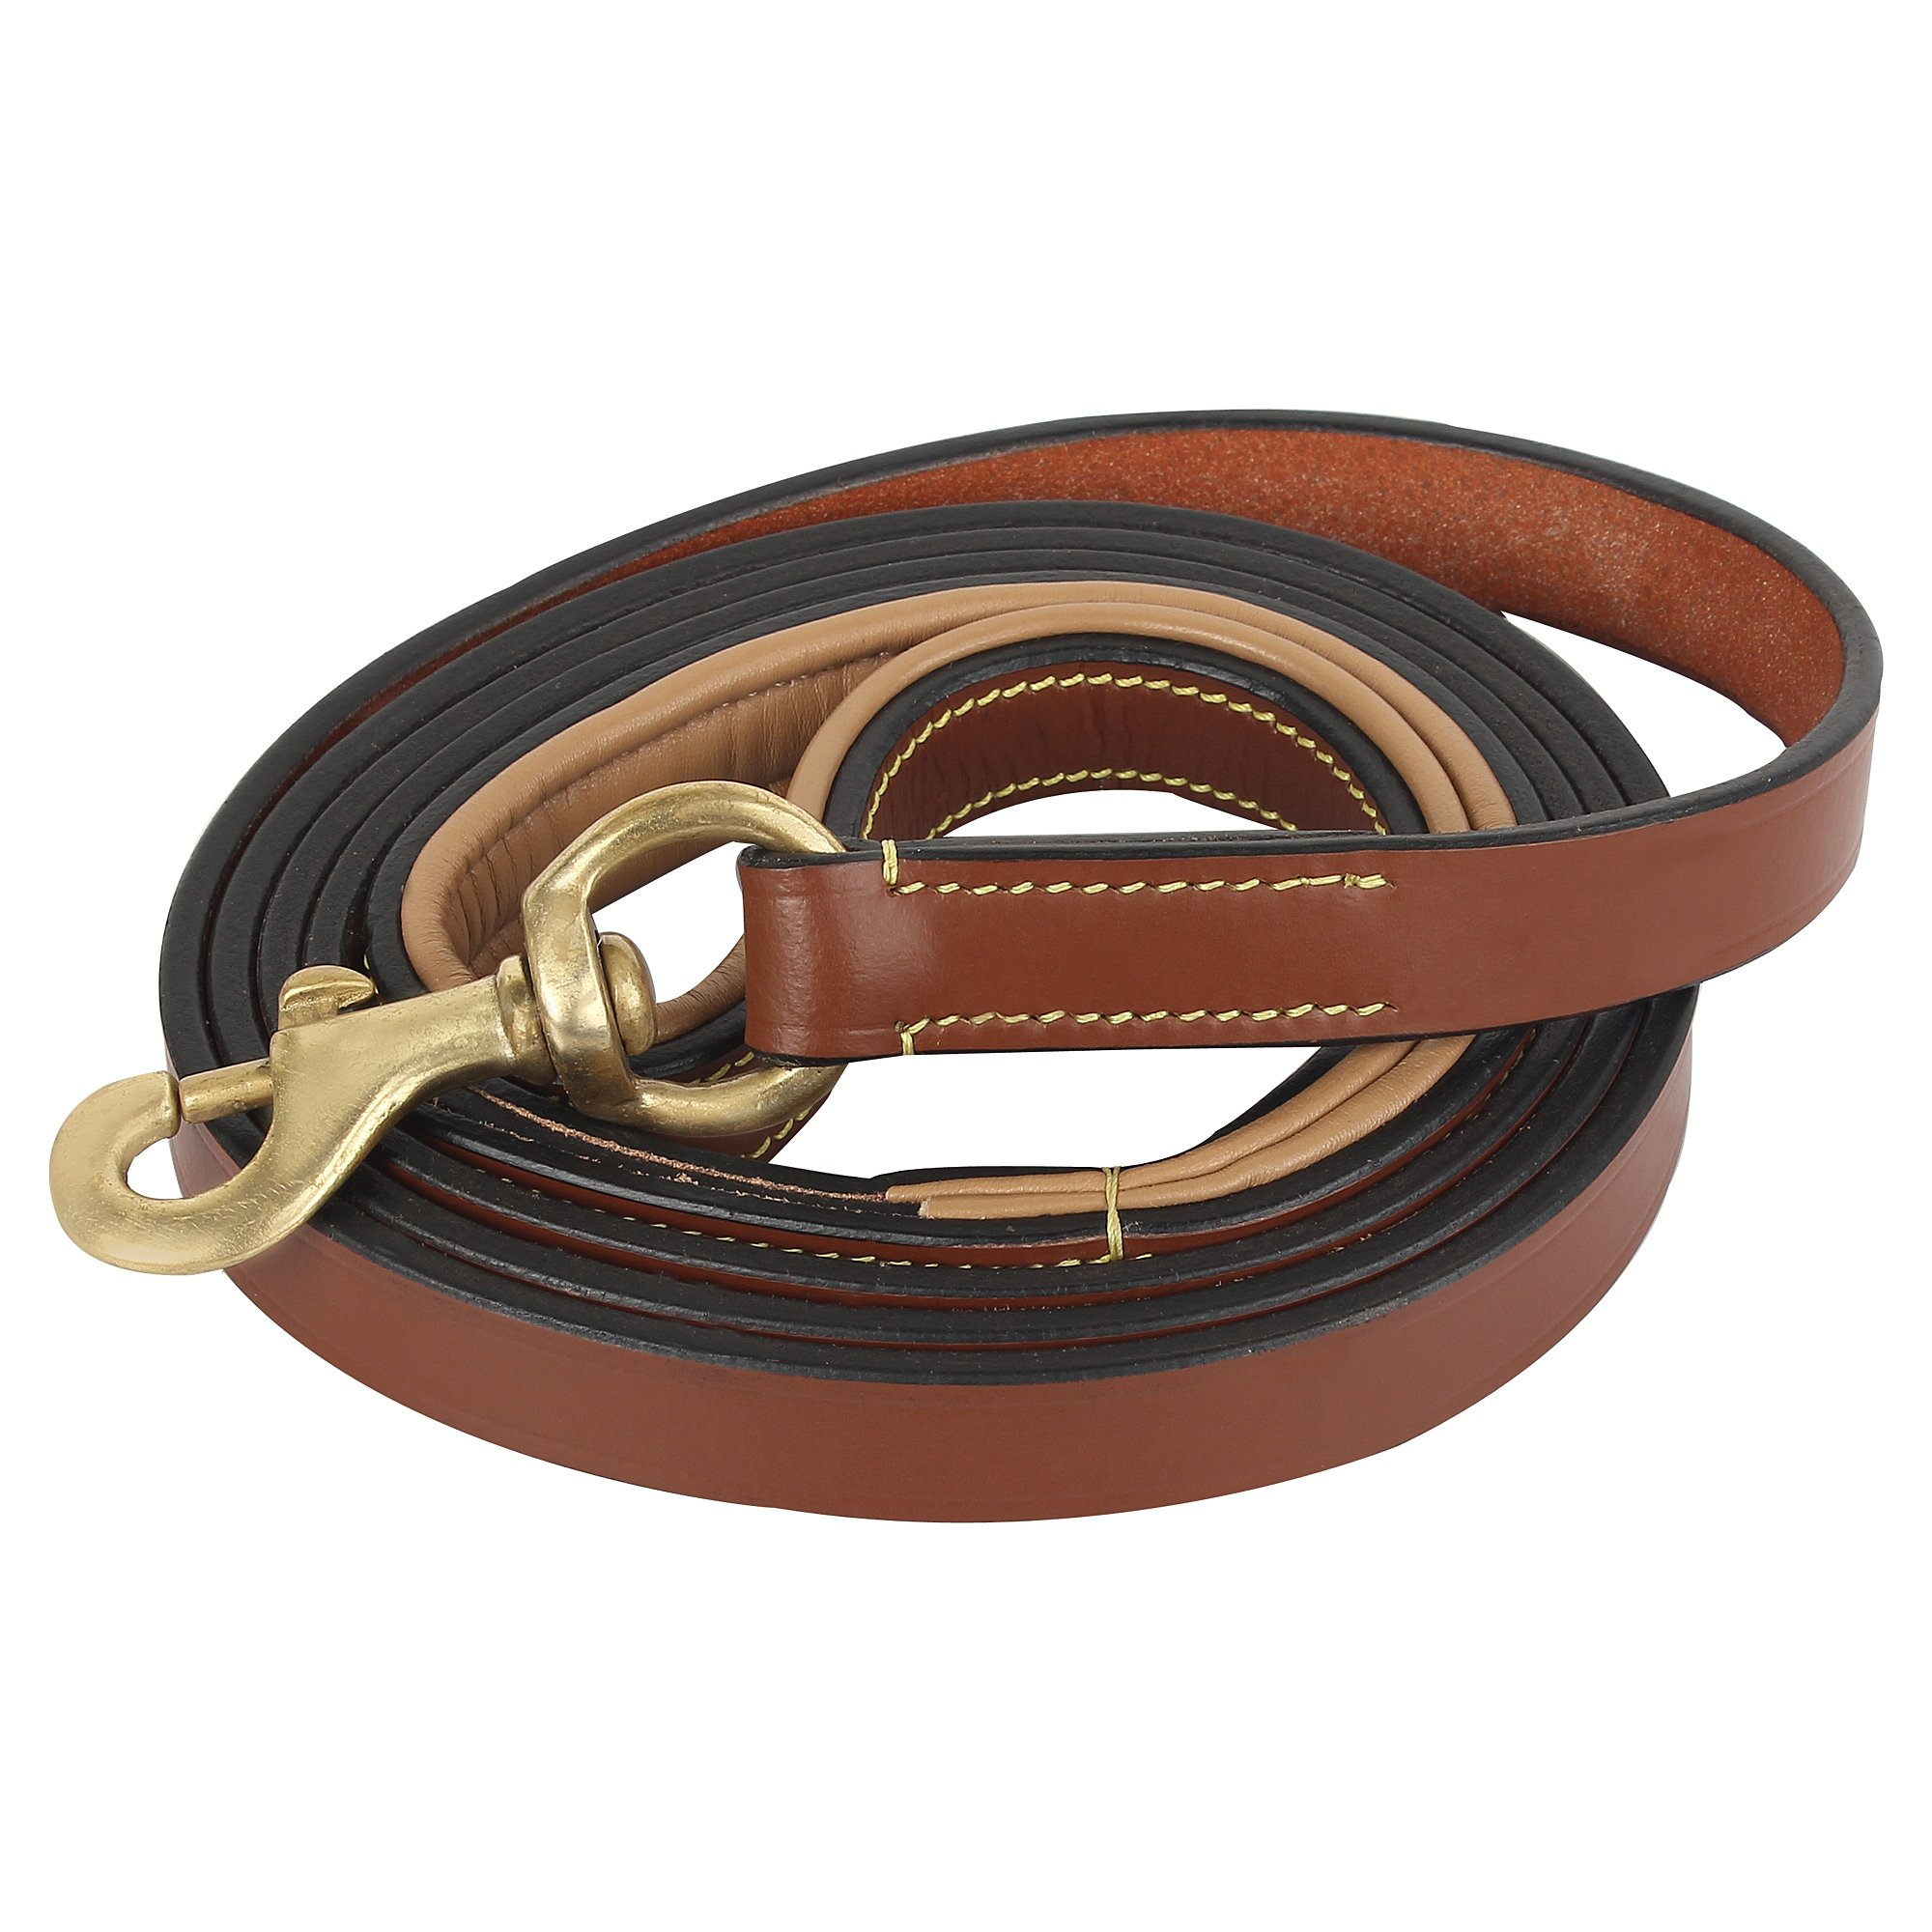 Rustic Town Leather Dog Leash 6 ft - Gentle Leader Leash for Small, Medium & Large Dogs - Miltary Grade Lead for Training & Walking by Rustic Town